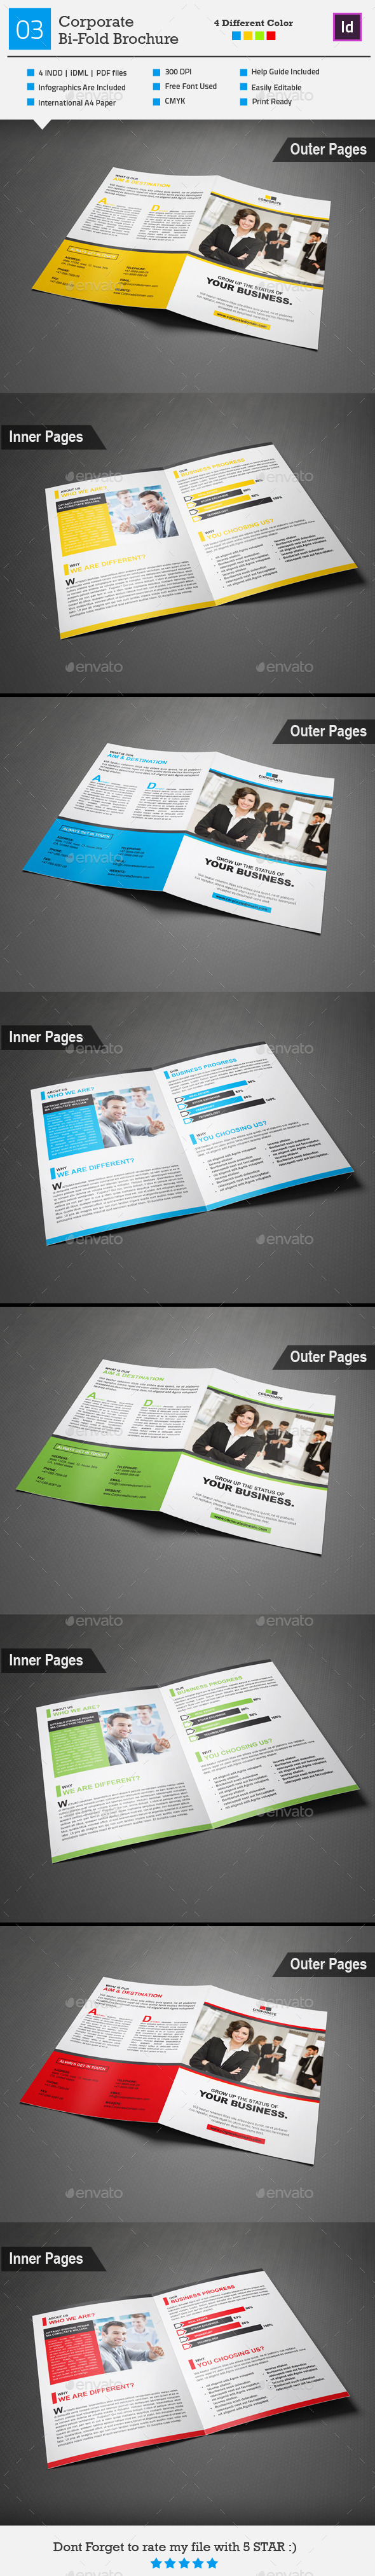 GraphicRiver Corporate Bi-Fold Brochure 03 9147332